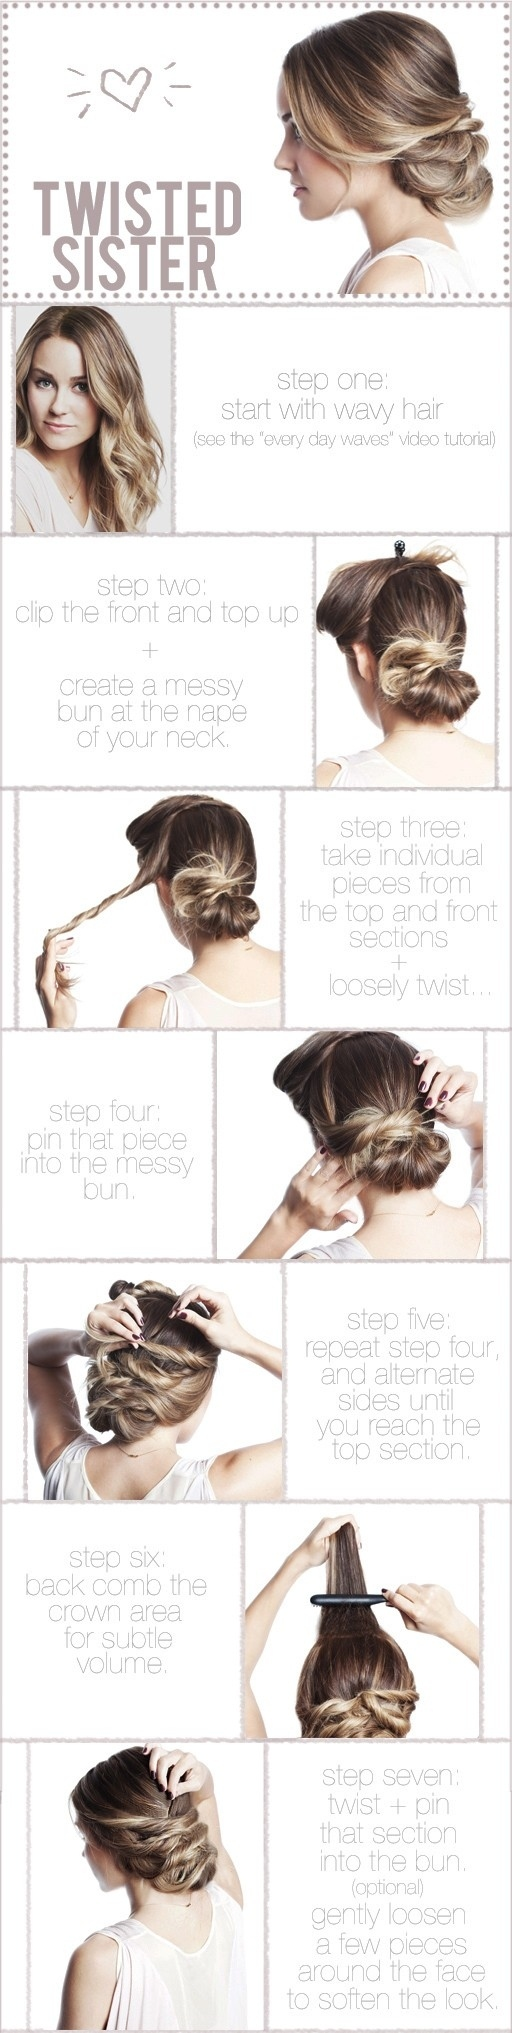 Tutorial On How To Style Your Hair _ For Summer 2017 4